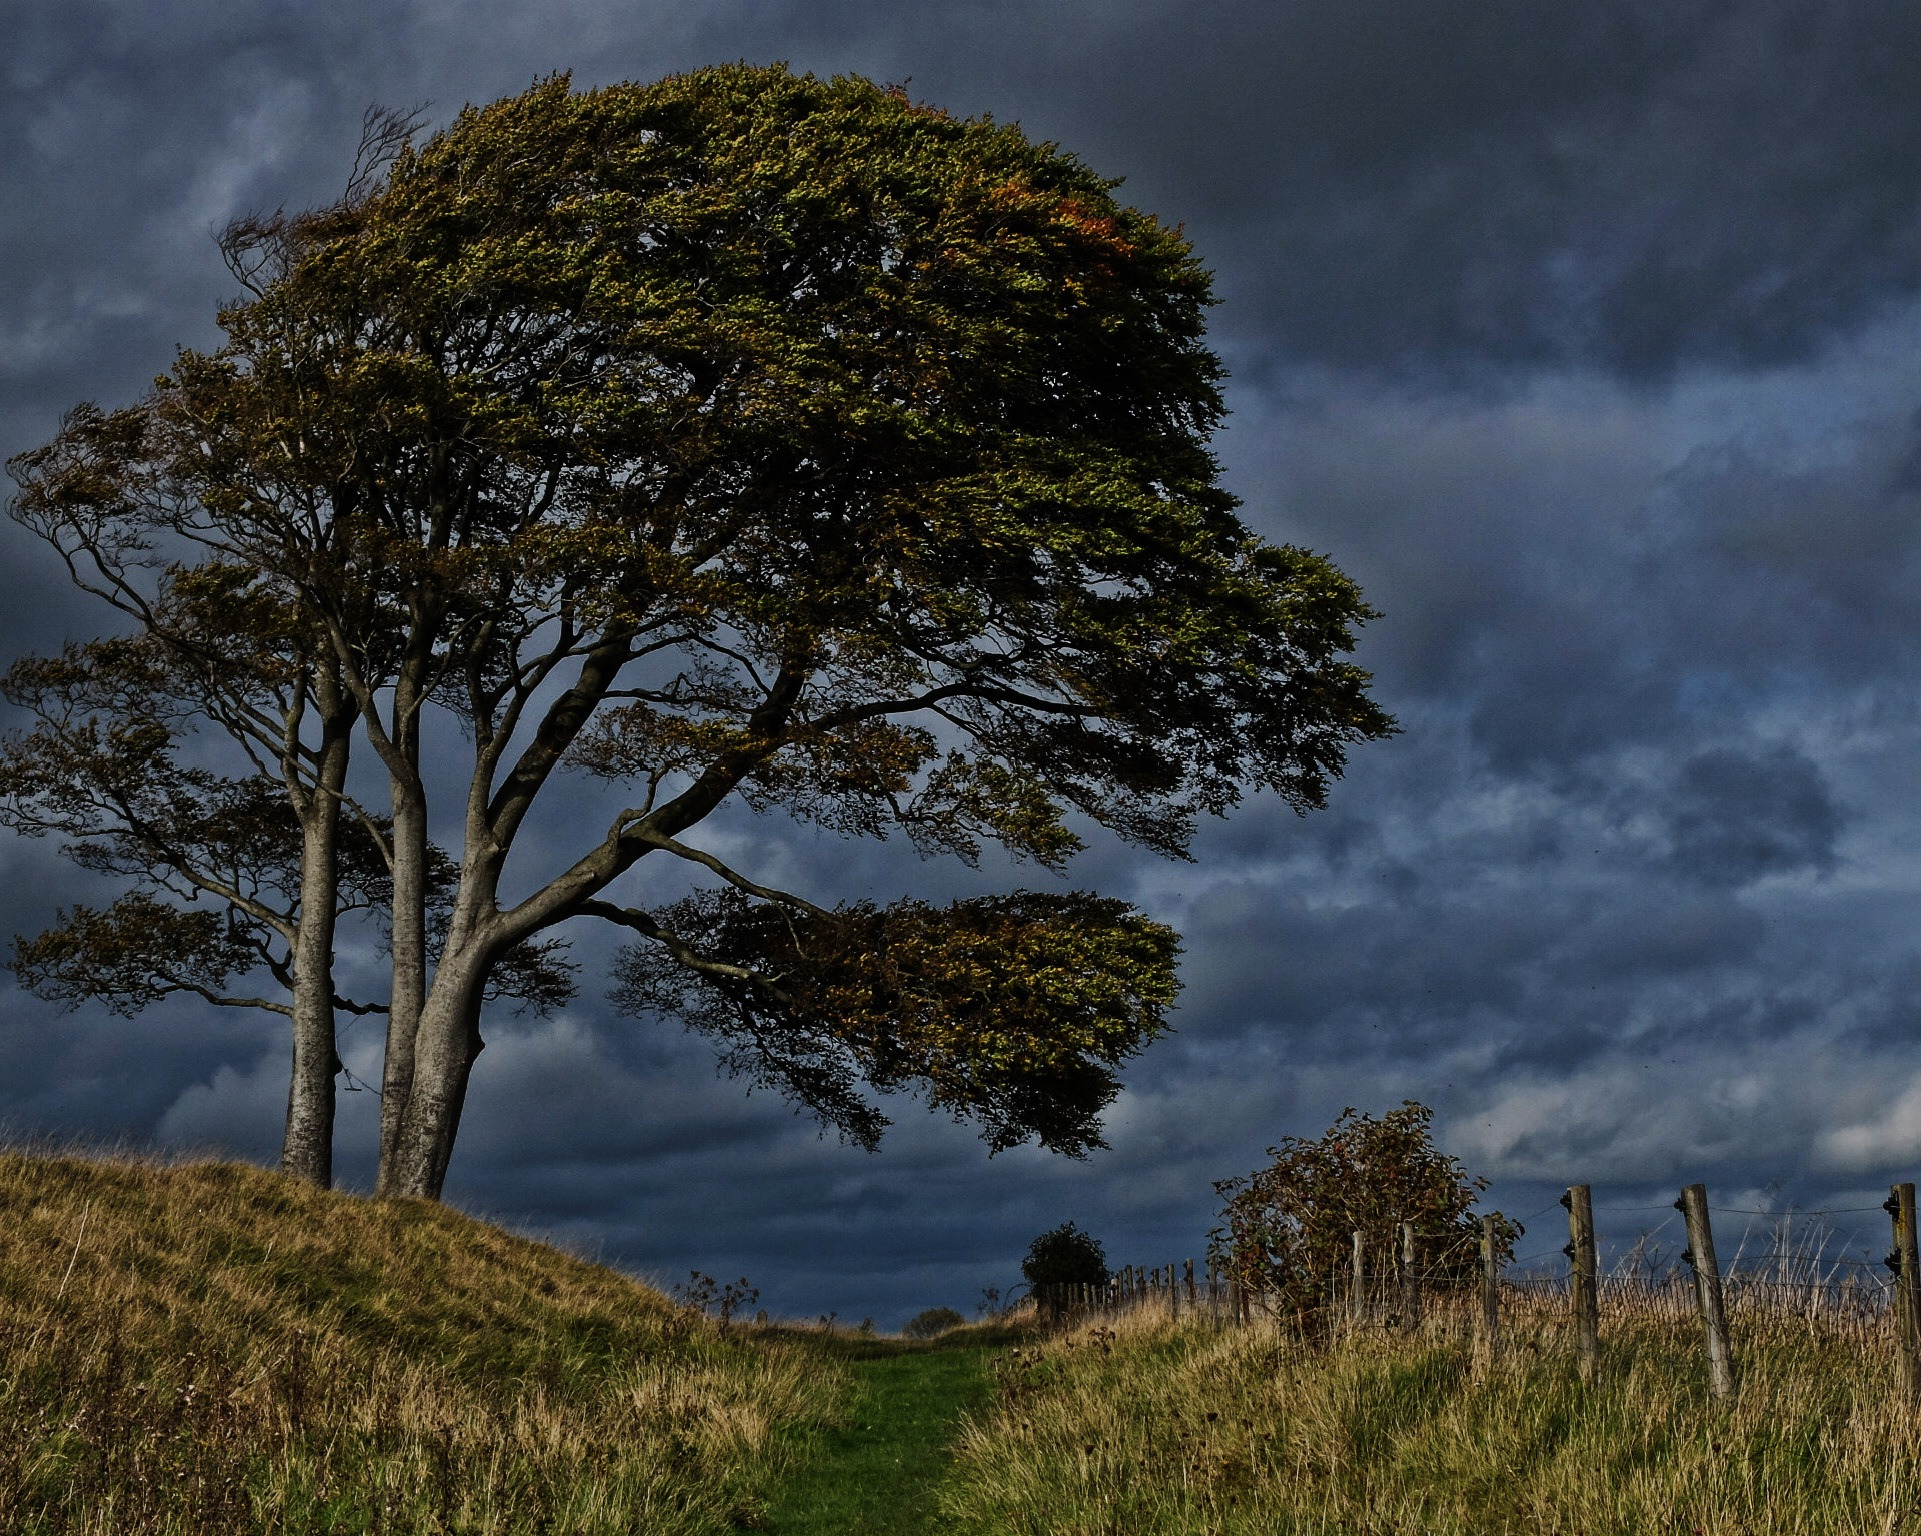 Tree In The Storm by Keith Patrak